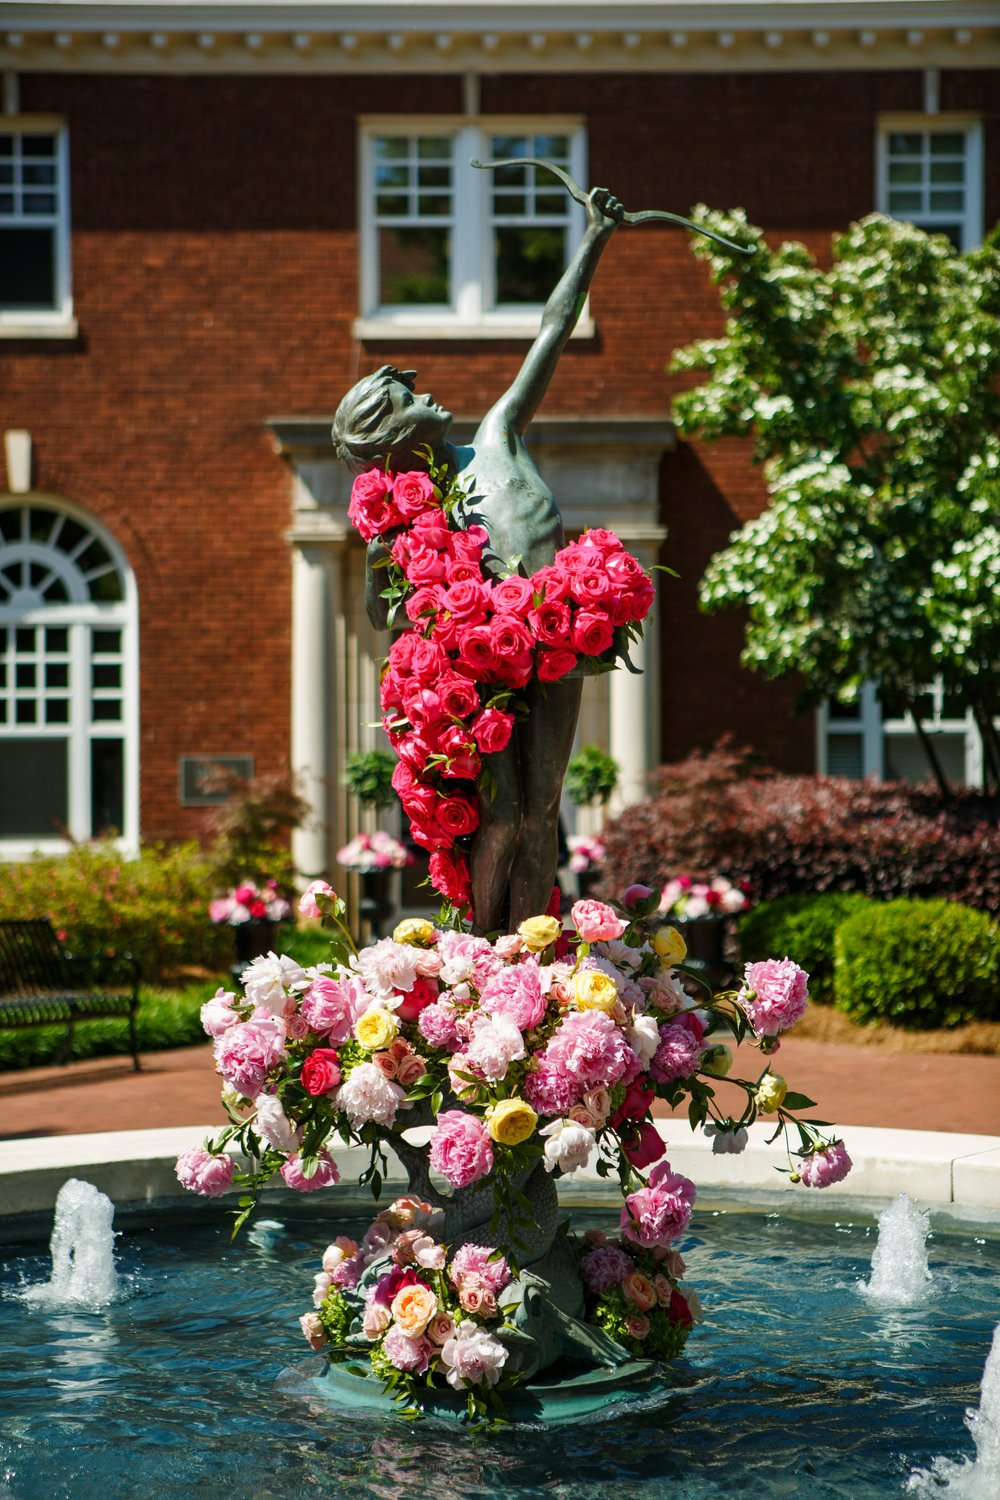 Watered Garden Florist created the stunning floral arrangements.